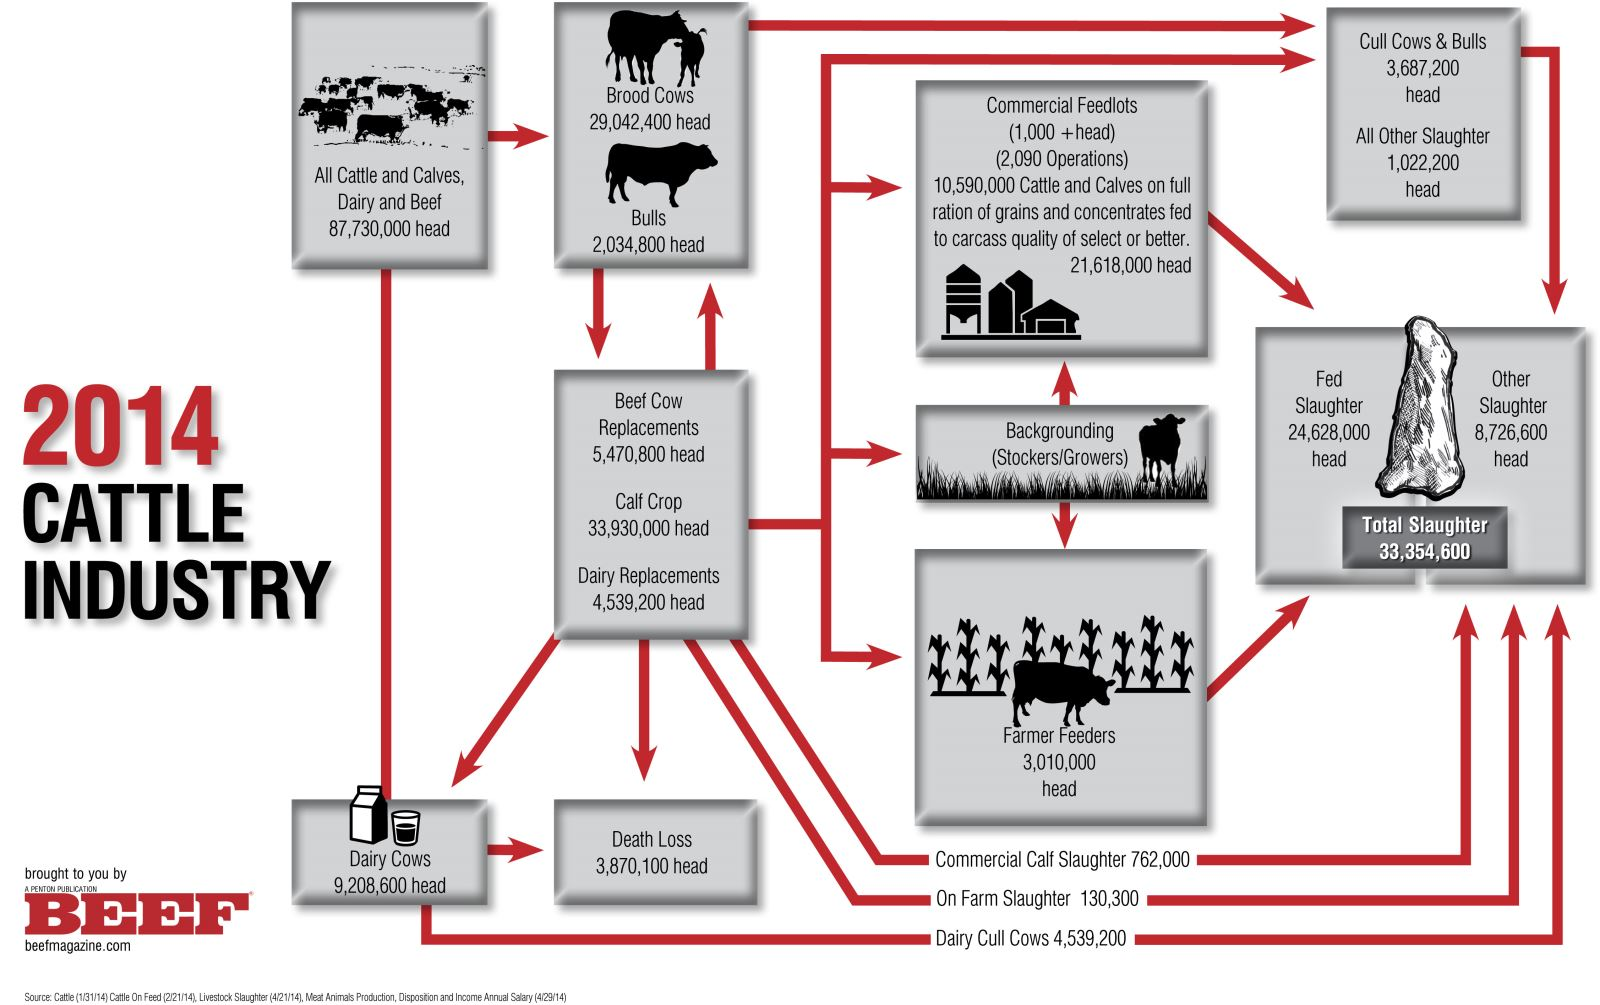 cattle industry flow chart 2014. Black Bedroom Furniture Sets. Home Design Ideas